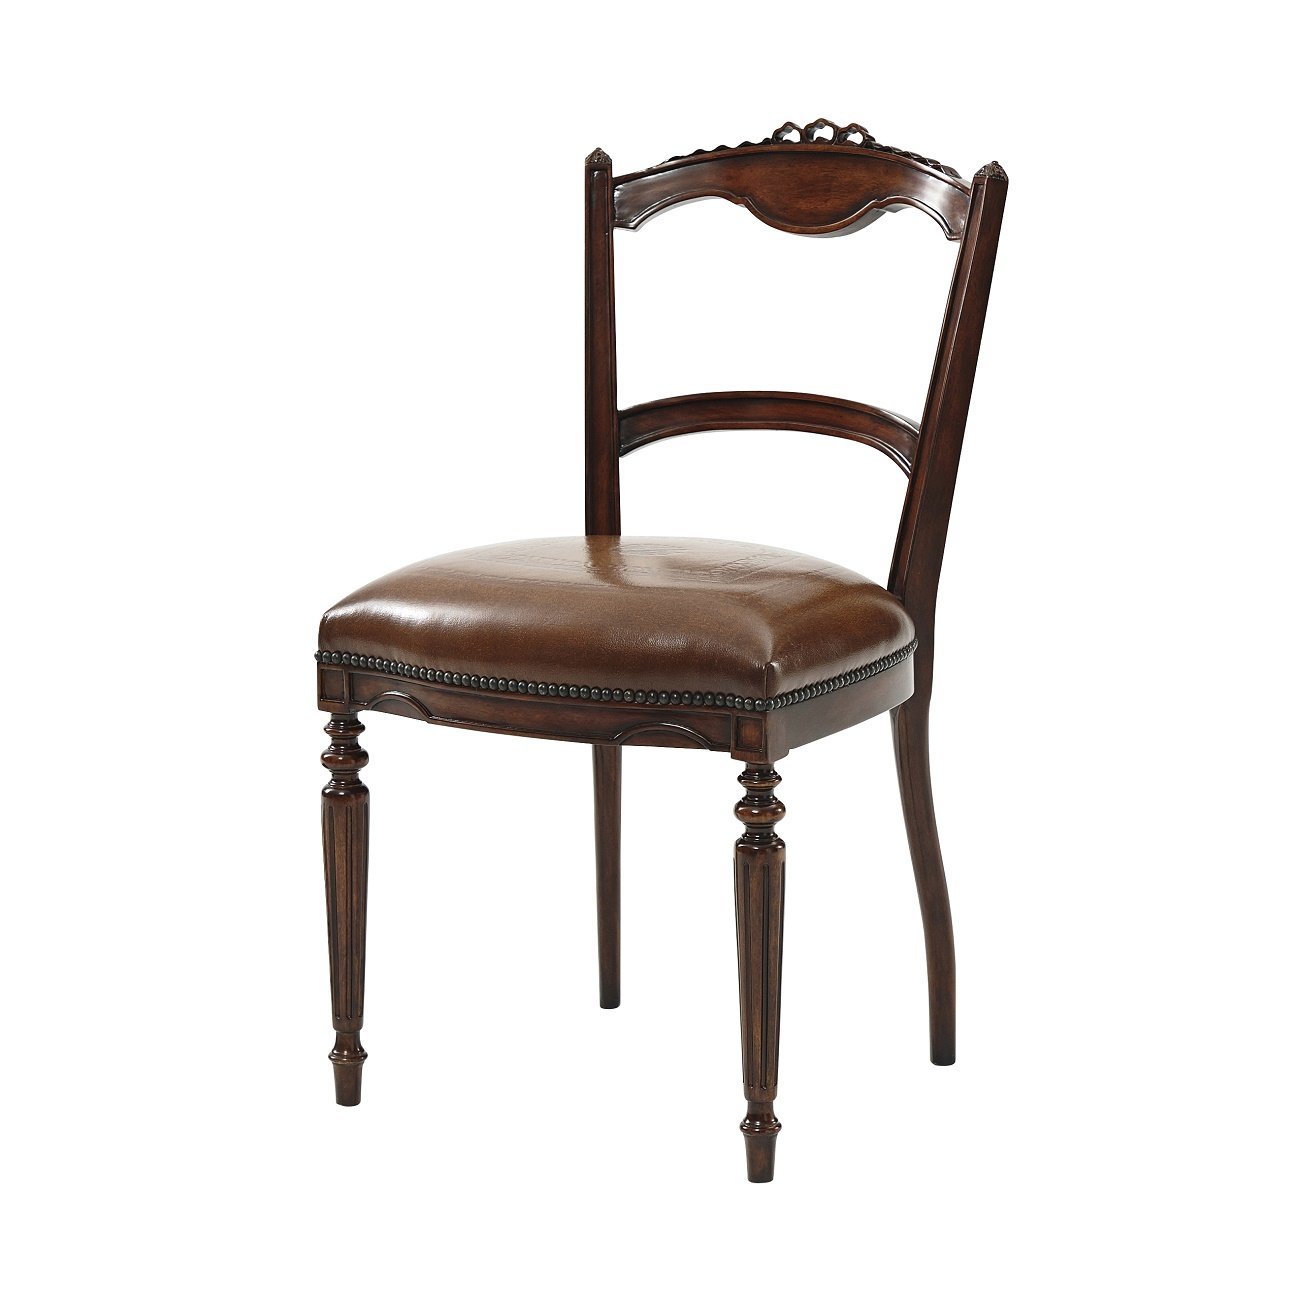 Theodore Alexander Atelier Chair Side Chairs on Sale Brooklyn - Accentuations Brand